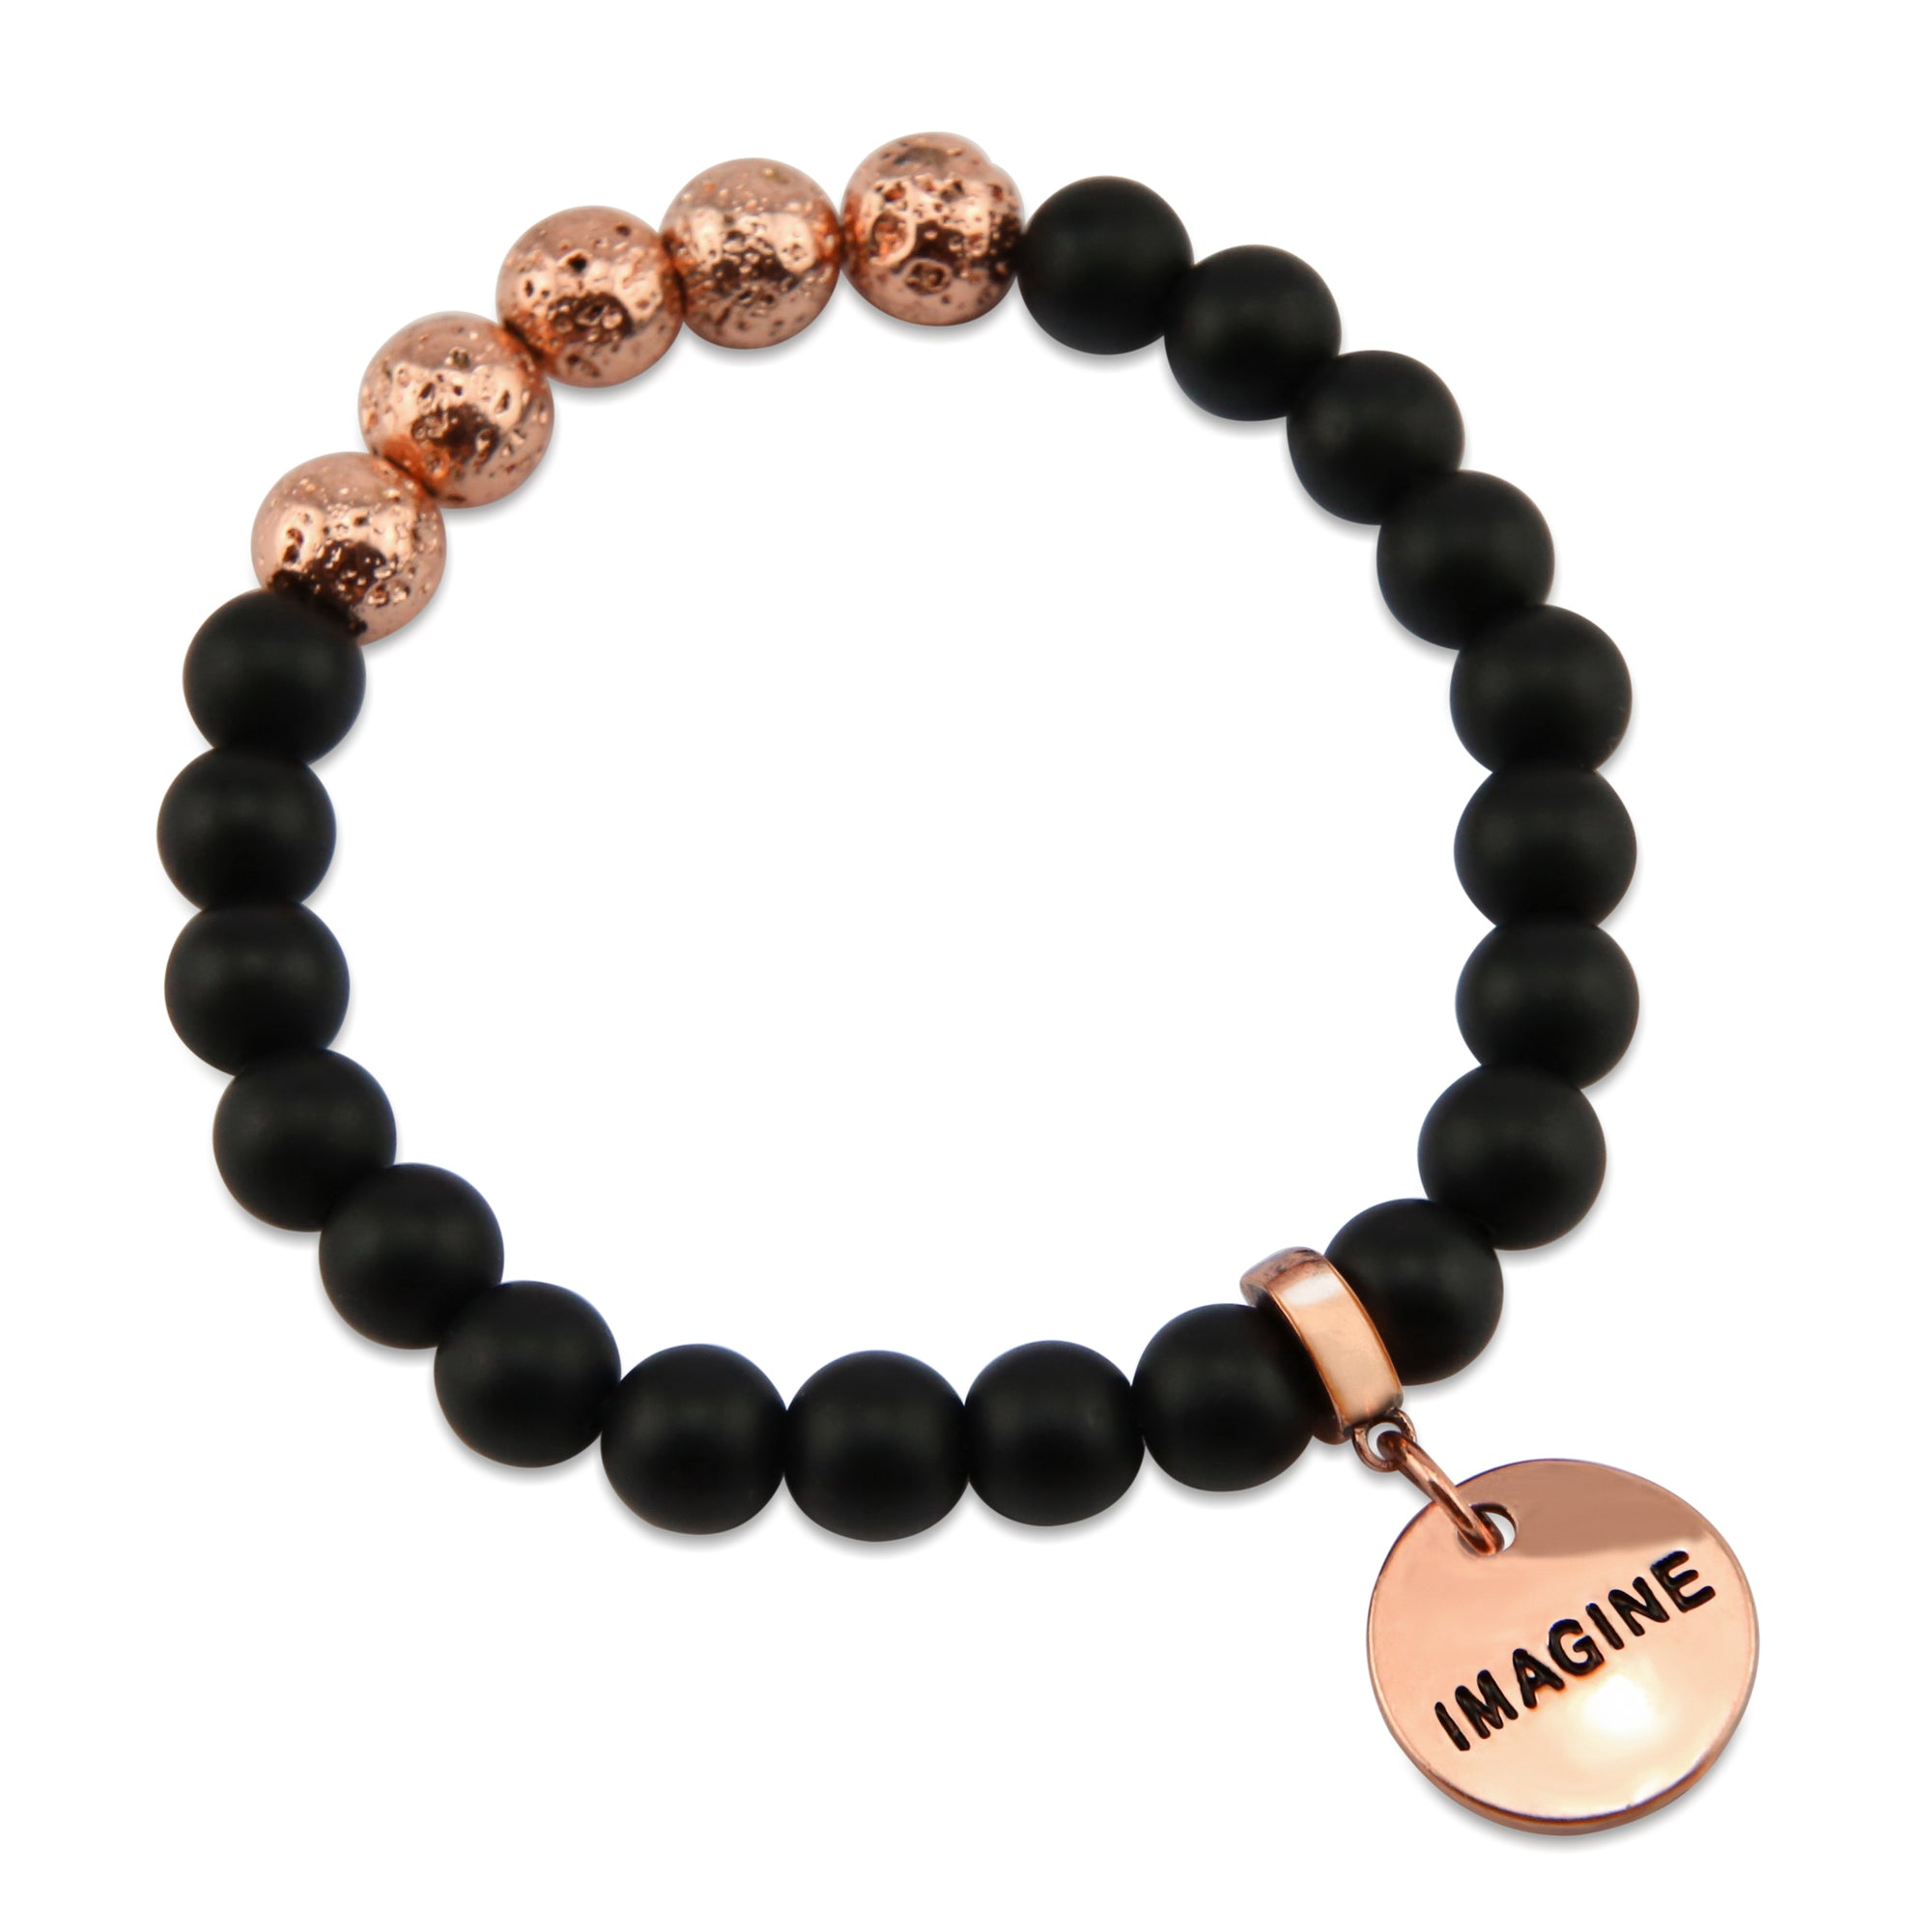 Lava Stone Bracelet -  8mm Matt Black Onyx + Rose Gold Lava Stone beads - with Rose Gold Word Charm